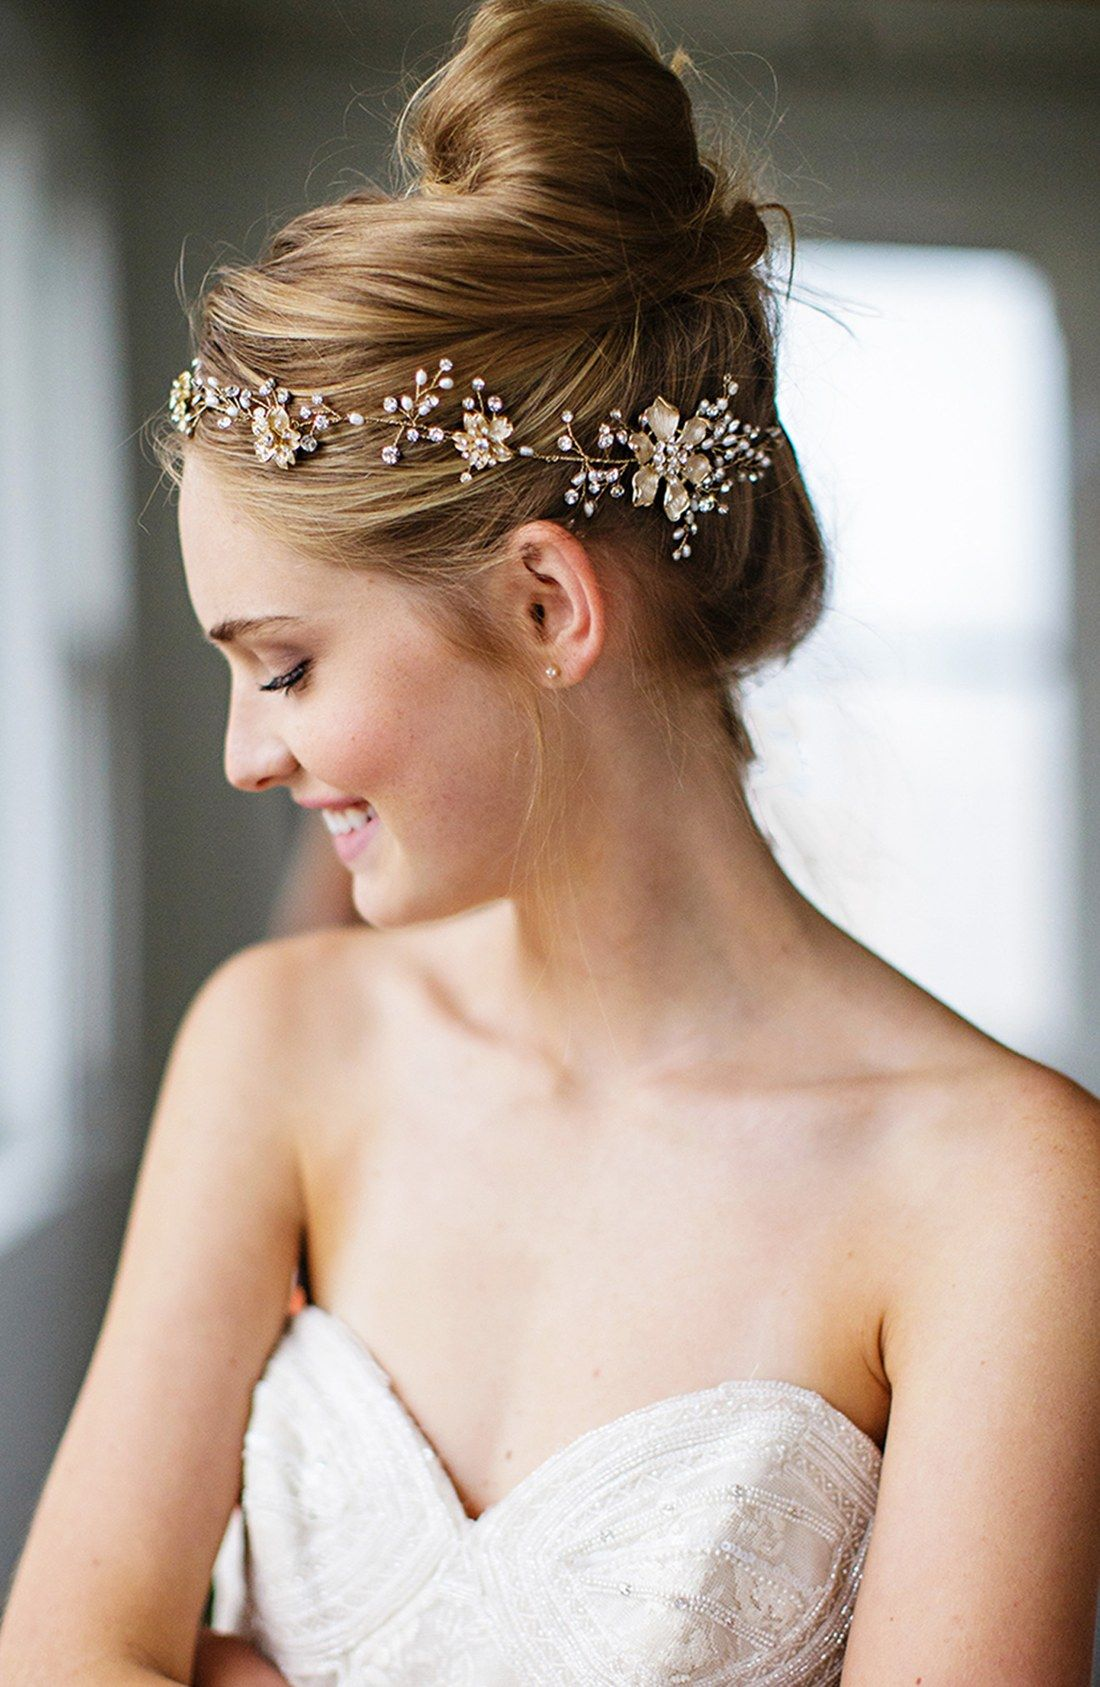 2017 wedding headpiece obsessions! hot hair accessory trends you'll